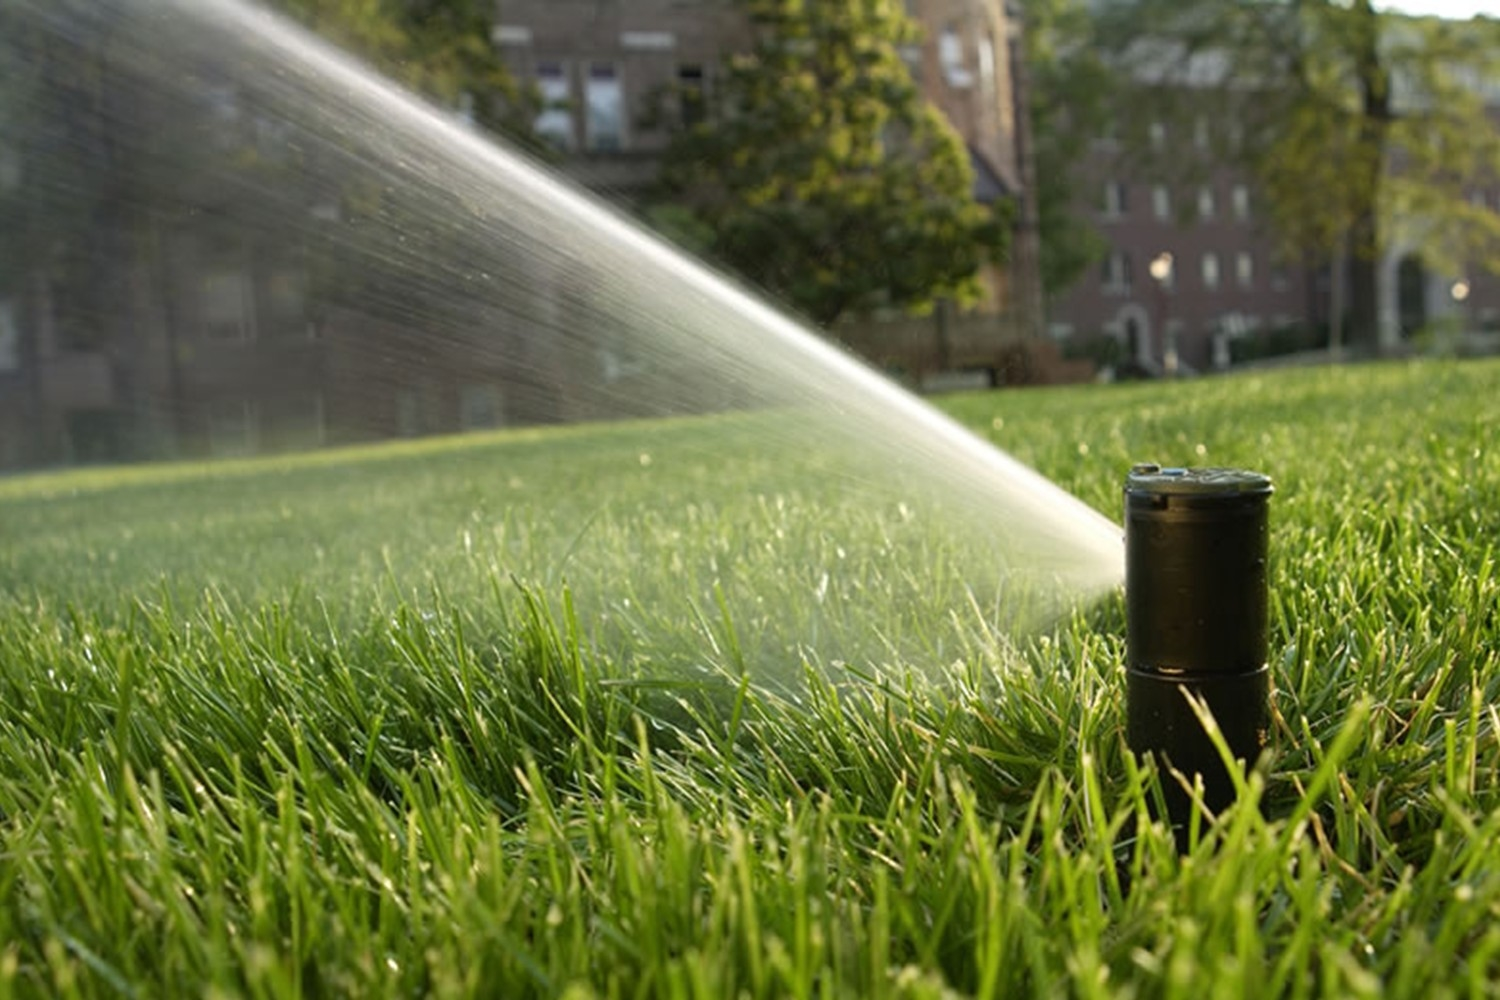 Irrigation and Sprinkling systems for business and commercial property in Grand Rapids MI - ProMowLandscape.com